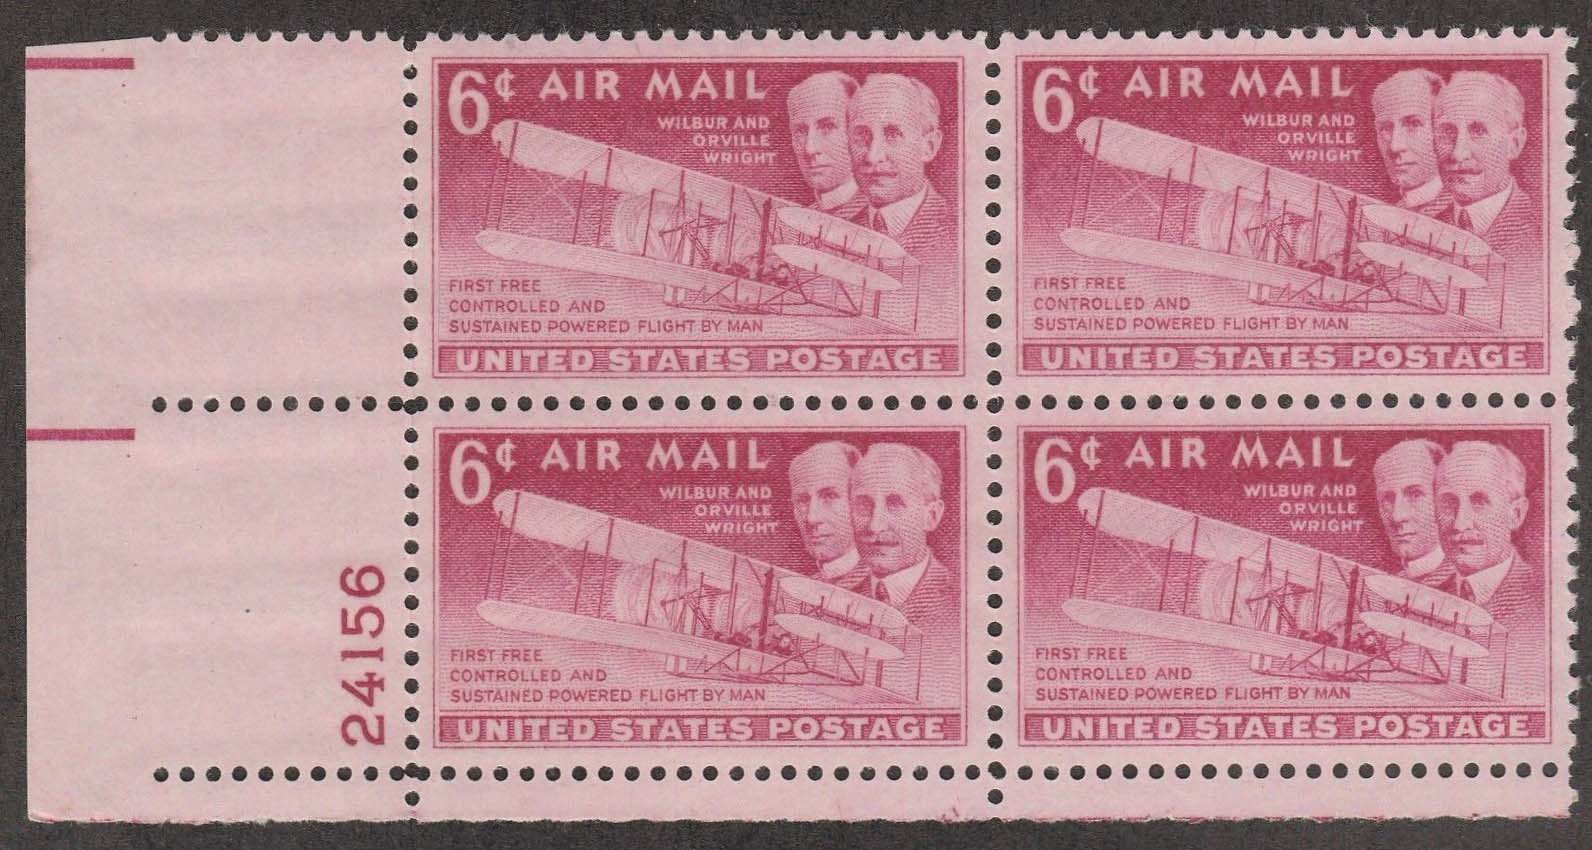 "Scott C-045 Plate Block (6 cents) <p> <a href=""/images/USA-Scott-C-045-PB.jpg""><font color=green><b>View the image</a></b></font>"